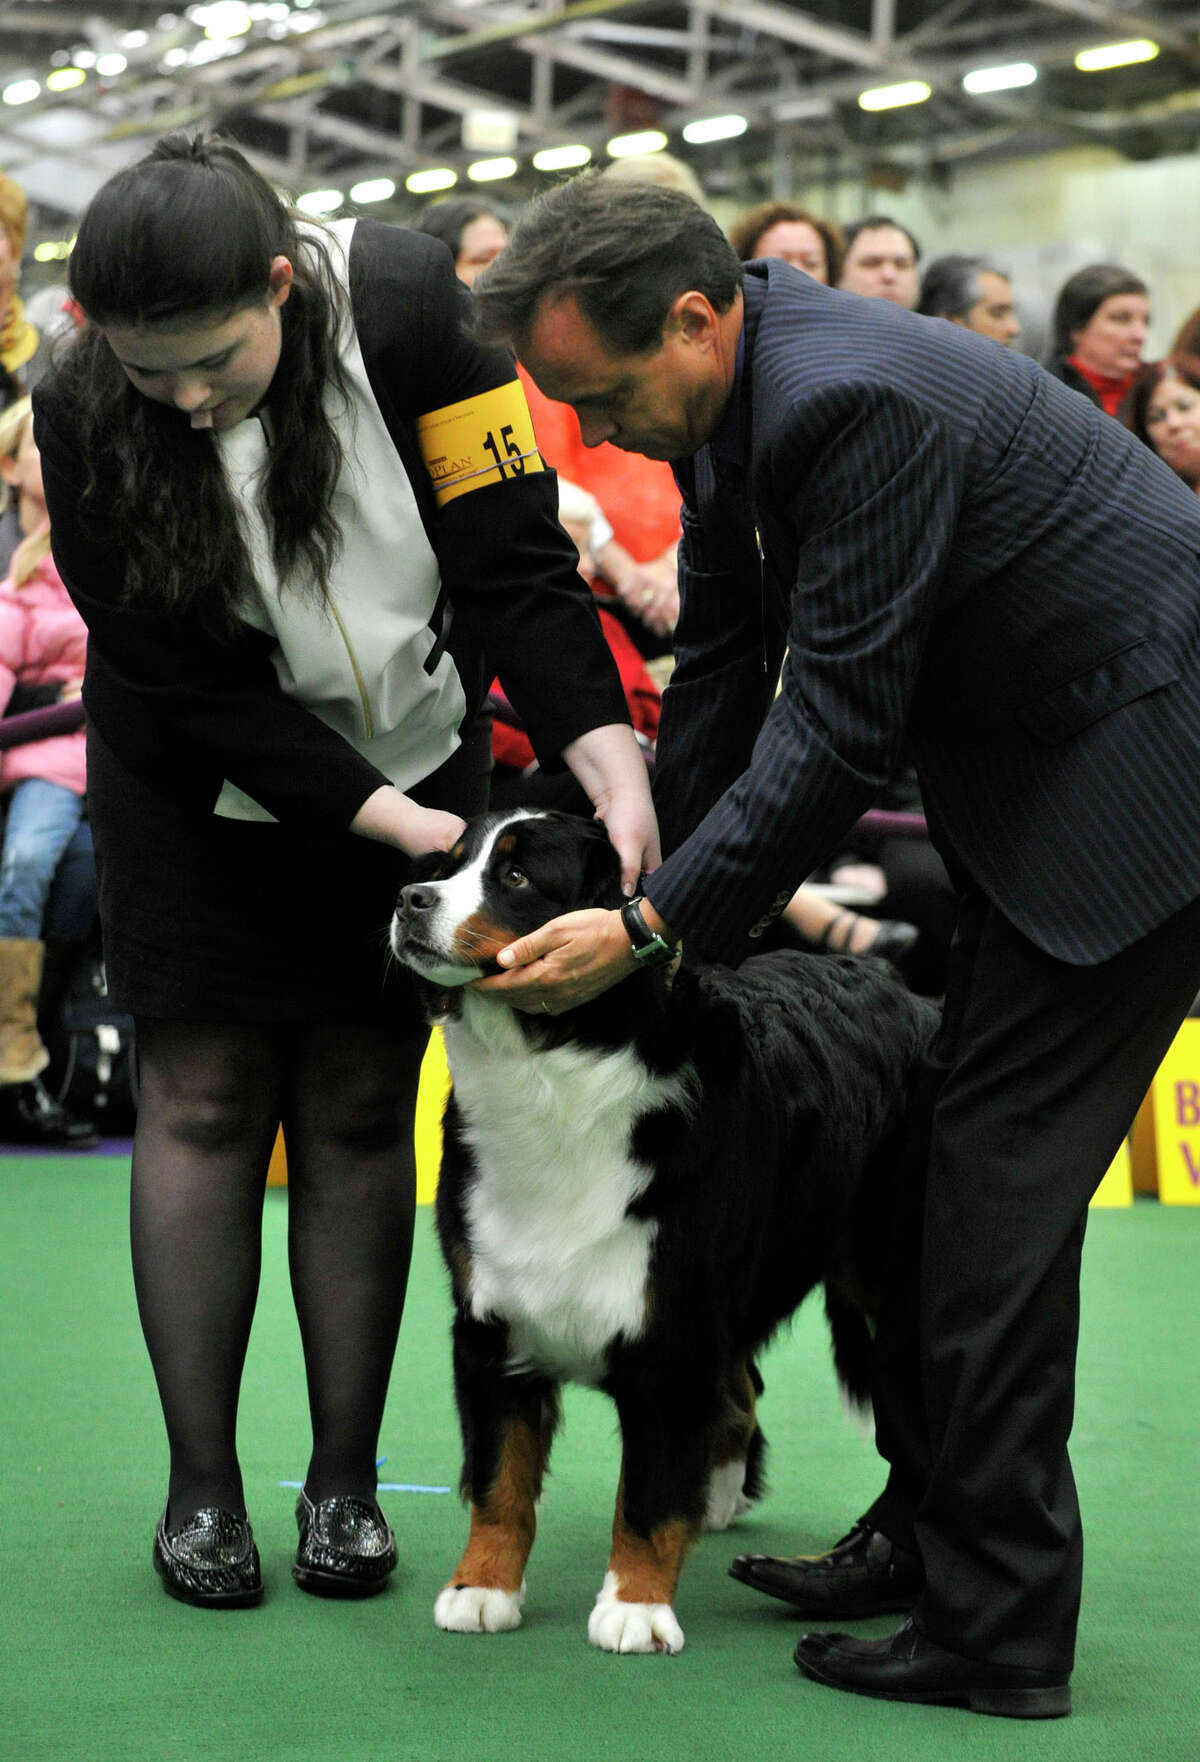 Rachel Meyers, of Southbury, shows her dog, Juliette, a Bernese mountain dog, to judge Espen Engh during the 137th Westminster Kennel Club Dog Show at Pier 92/94 in New York City on Tuesday, Feb. 12, 2013. For related coverage go to www.westminsterkennelclub.org.